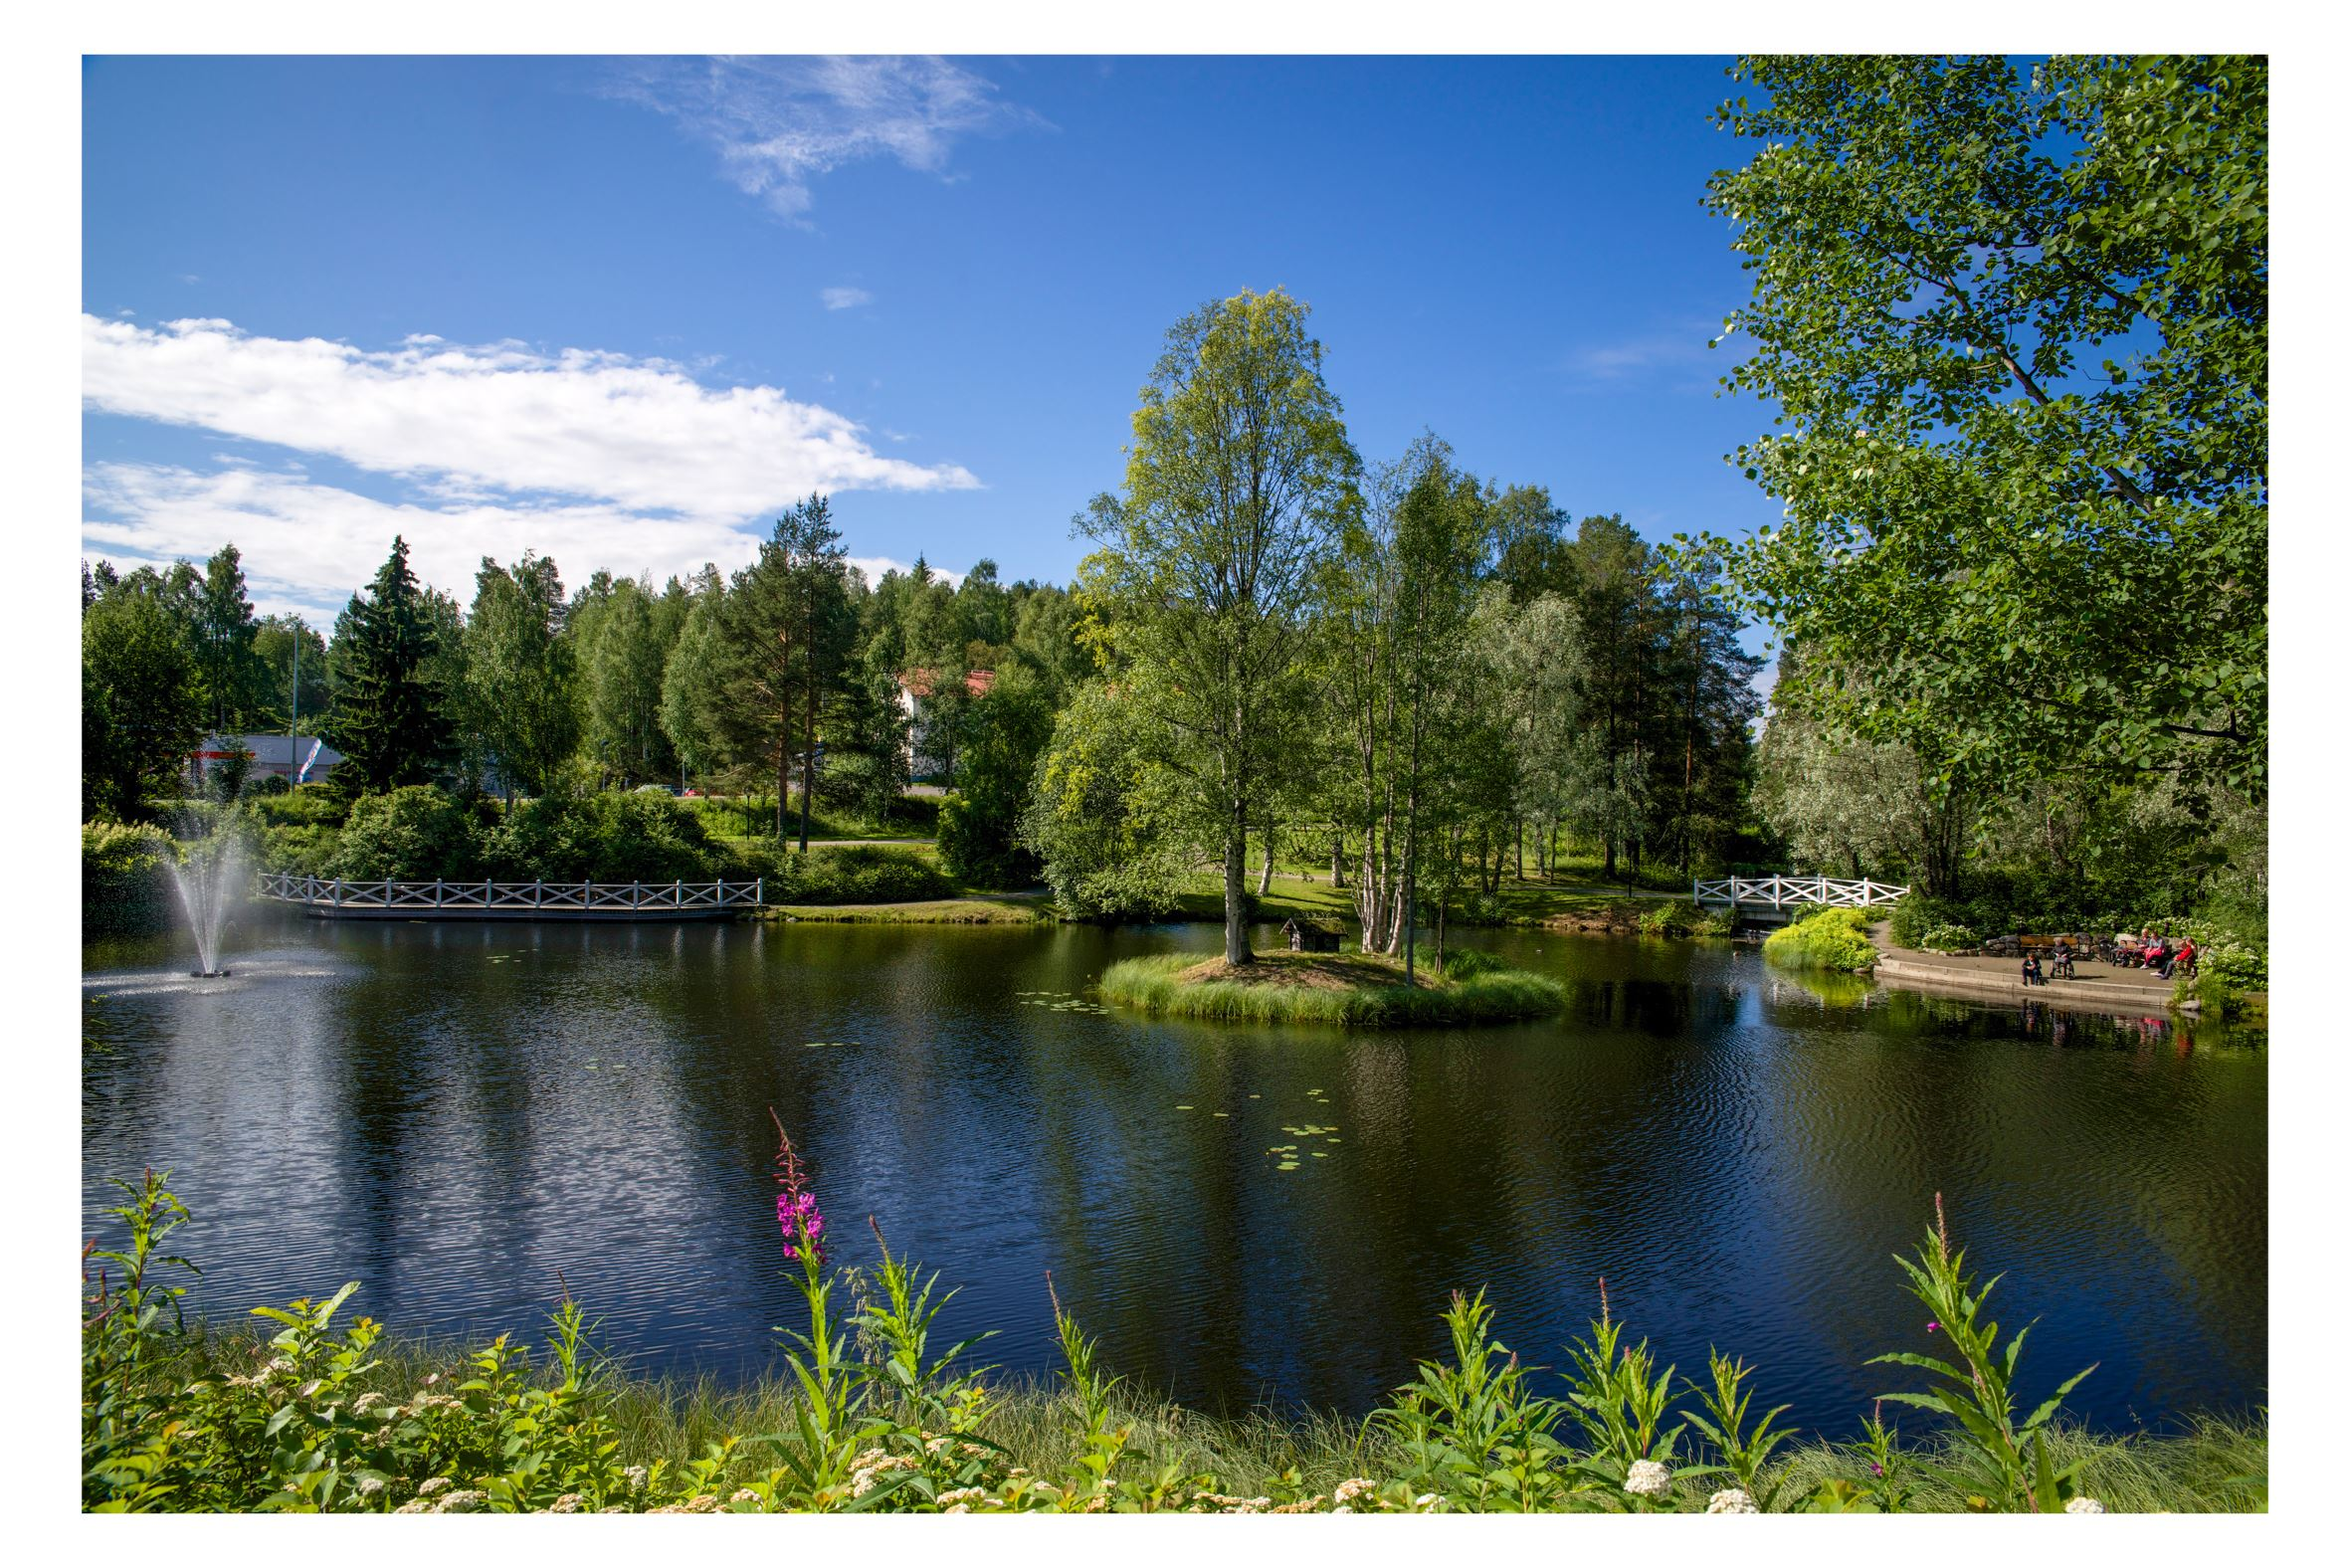 Ulla Sjöberg, Walk and hike in Lycksele's parks and closeby nature